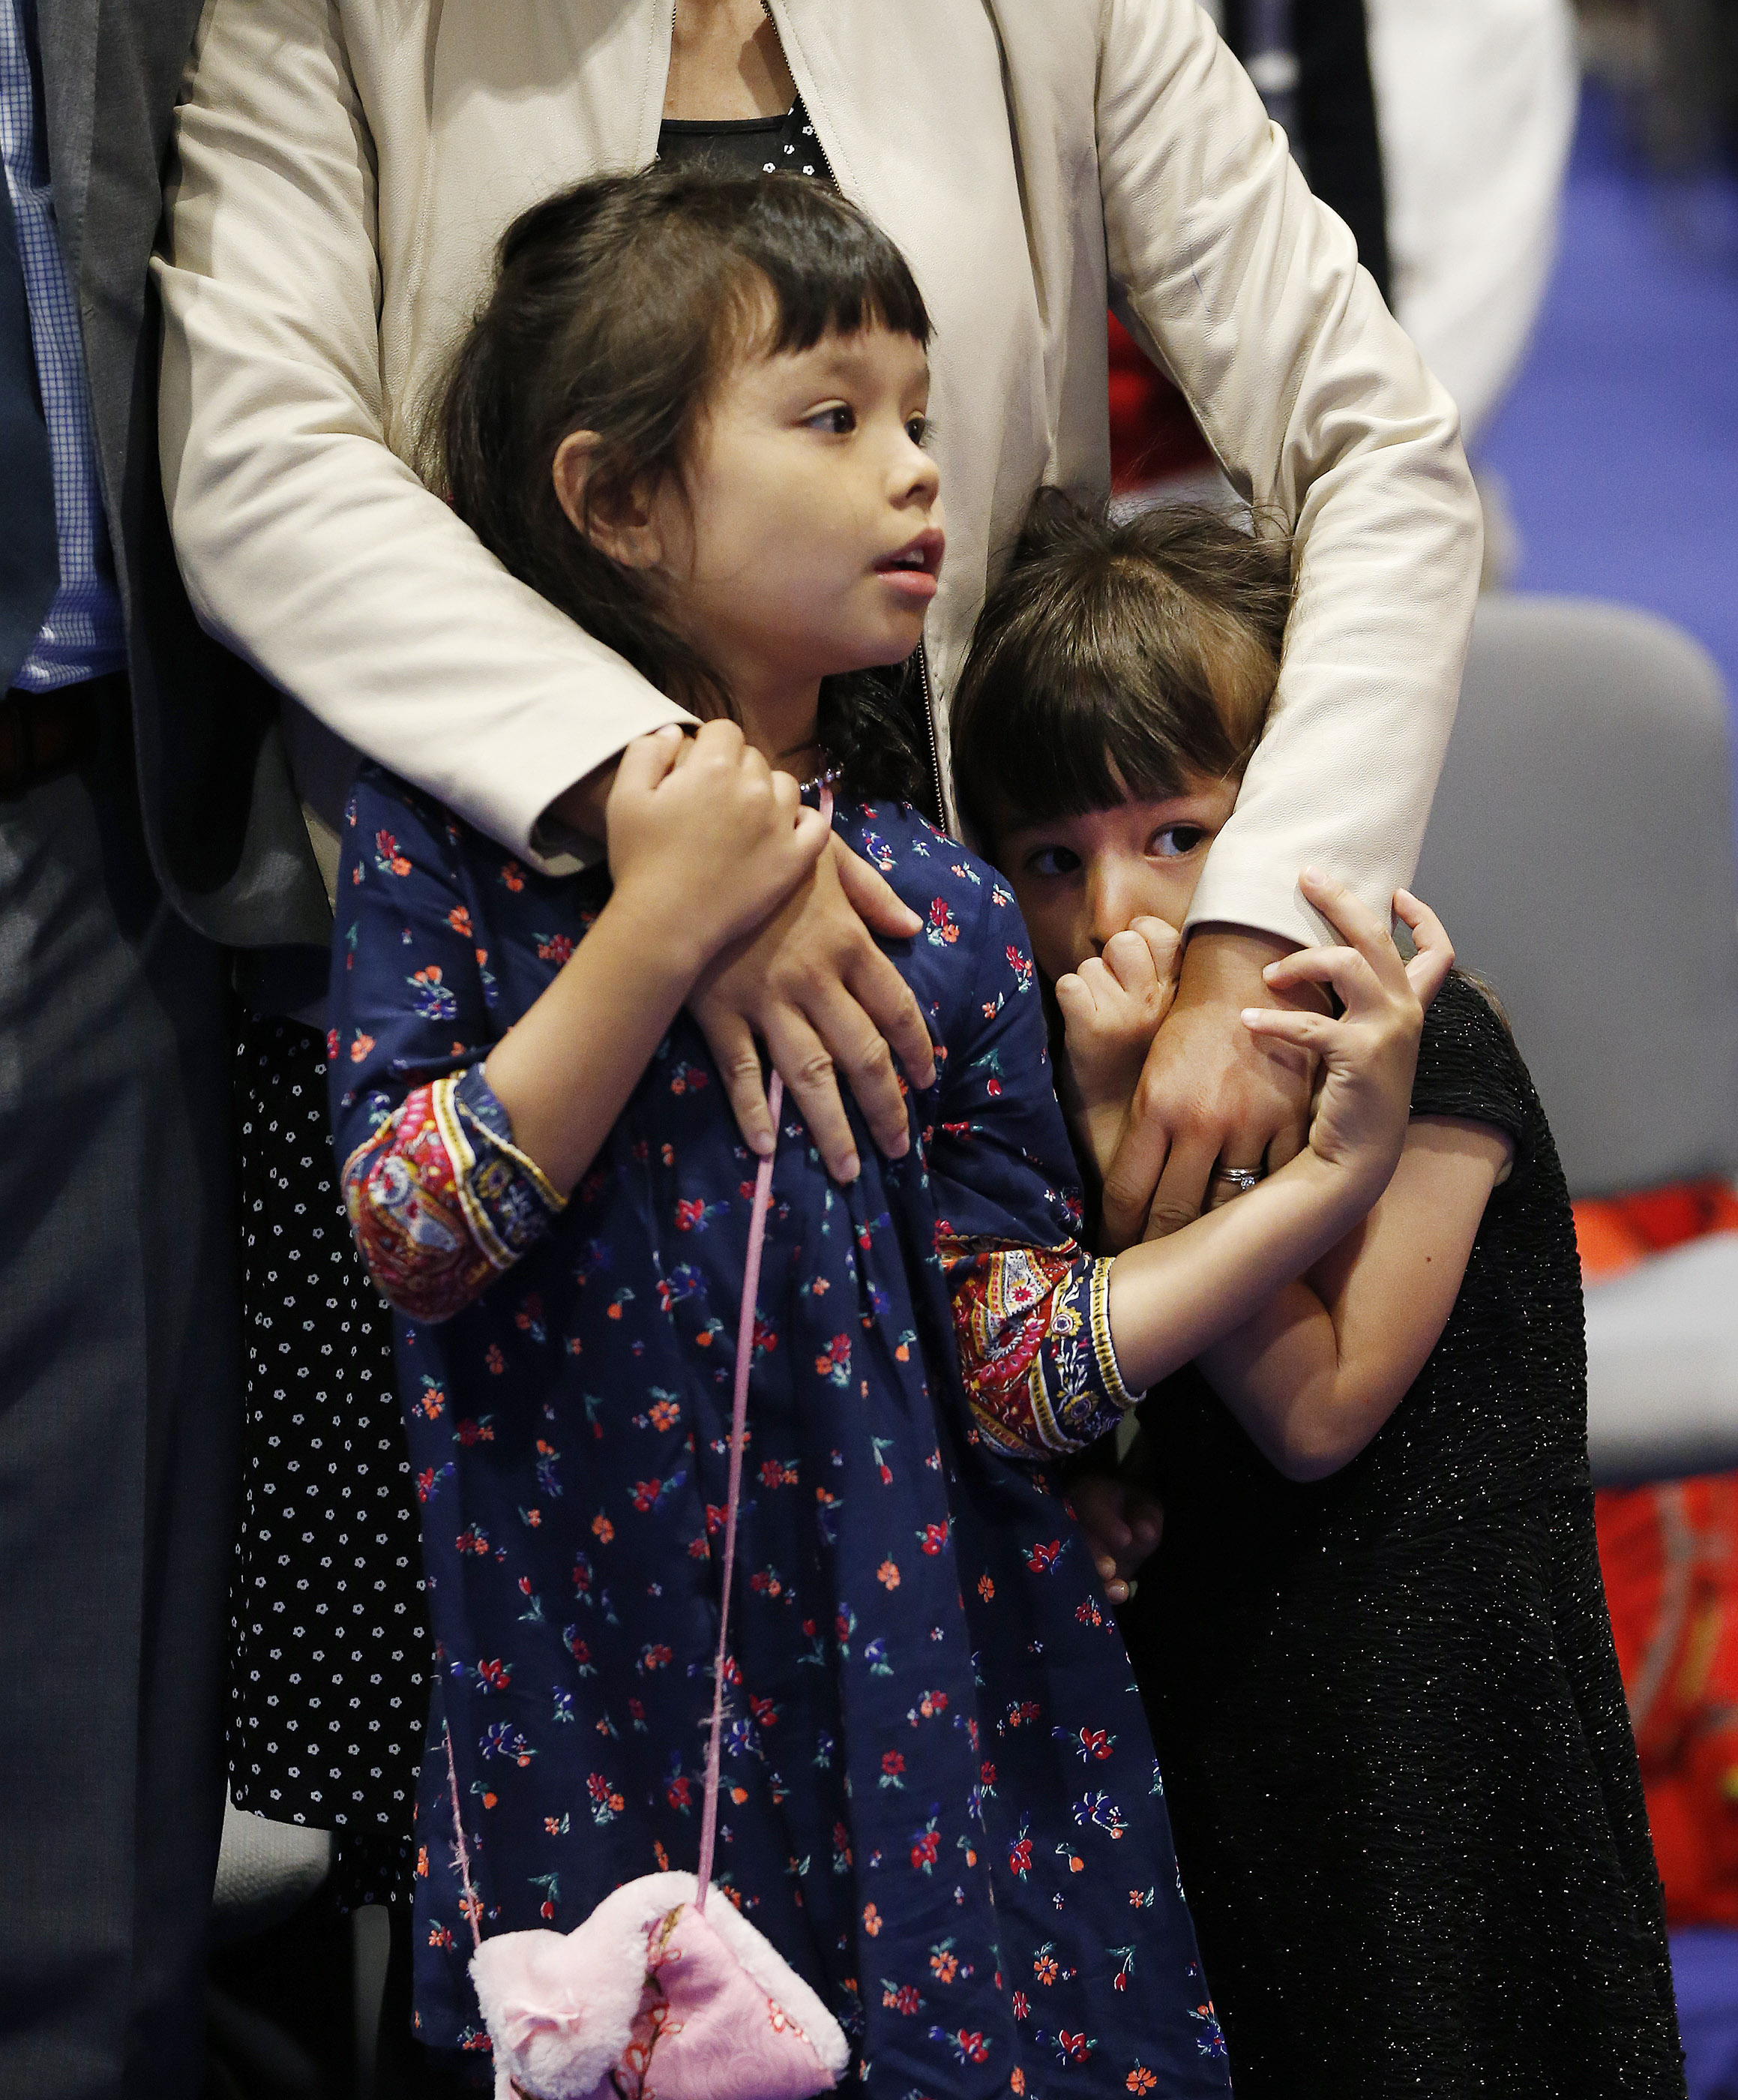 Annabelle and Claire watch as President Russell M. Nelson leaves the stand after a devotional in Hong Kong on Saturday, April 21, 2018.